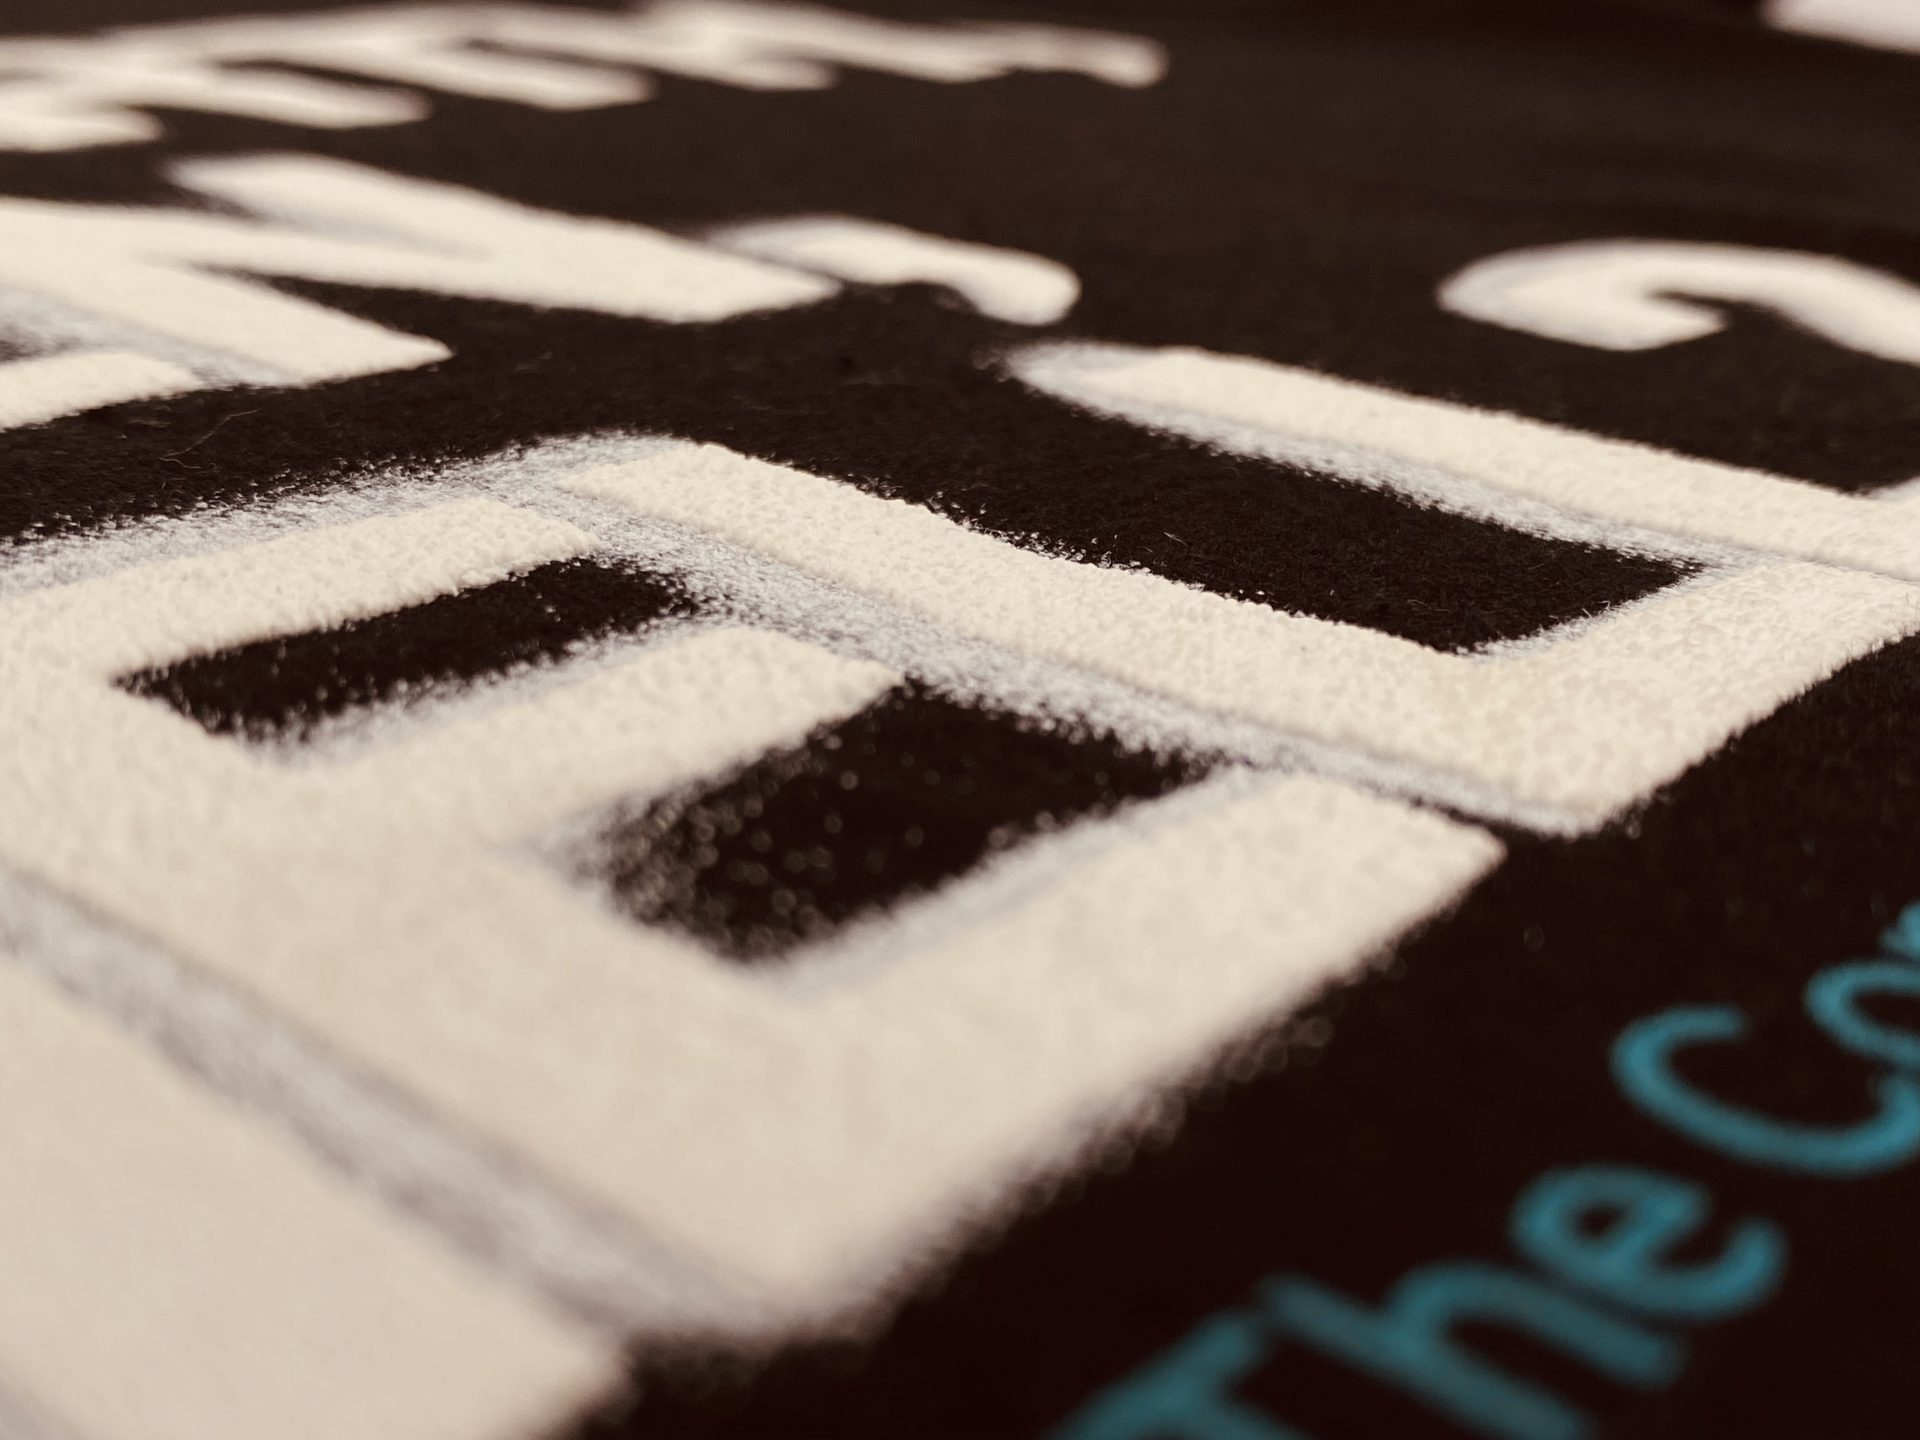 Close up of exapndng or puff ink on a printed t-shirt by Paul Bristow